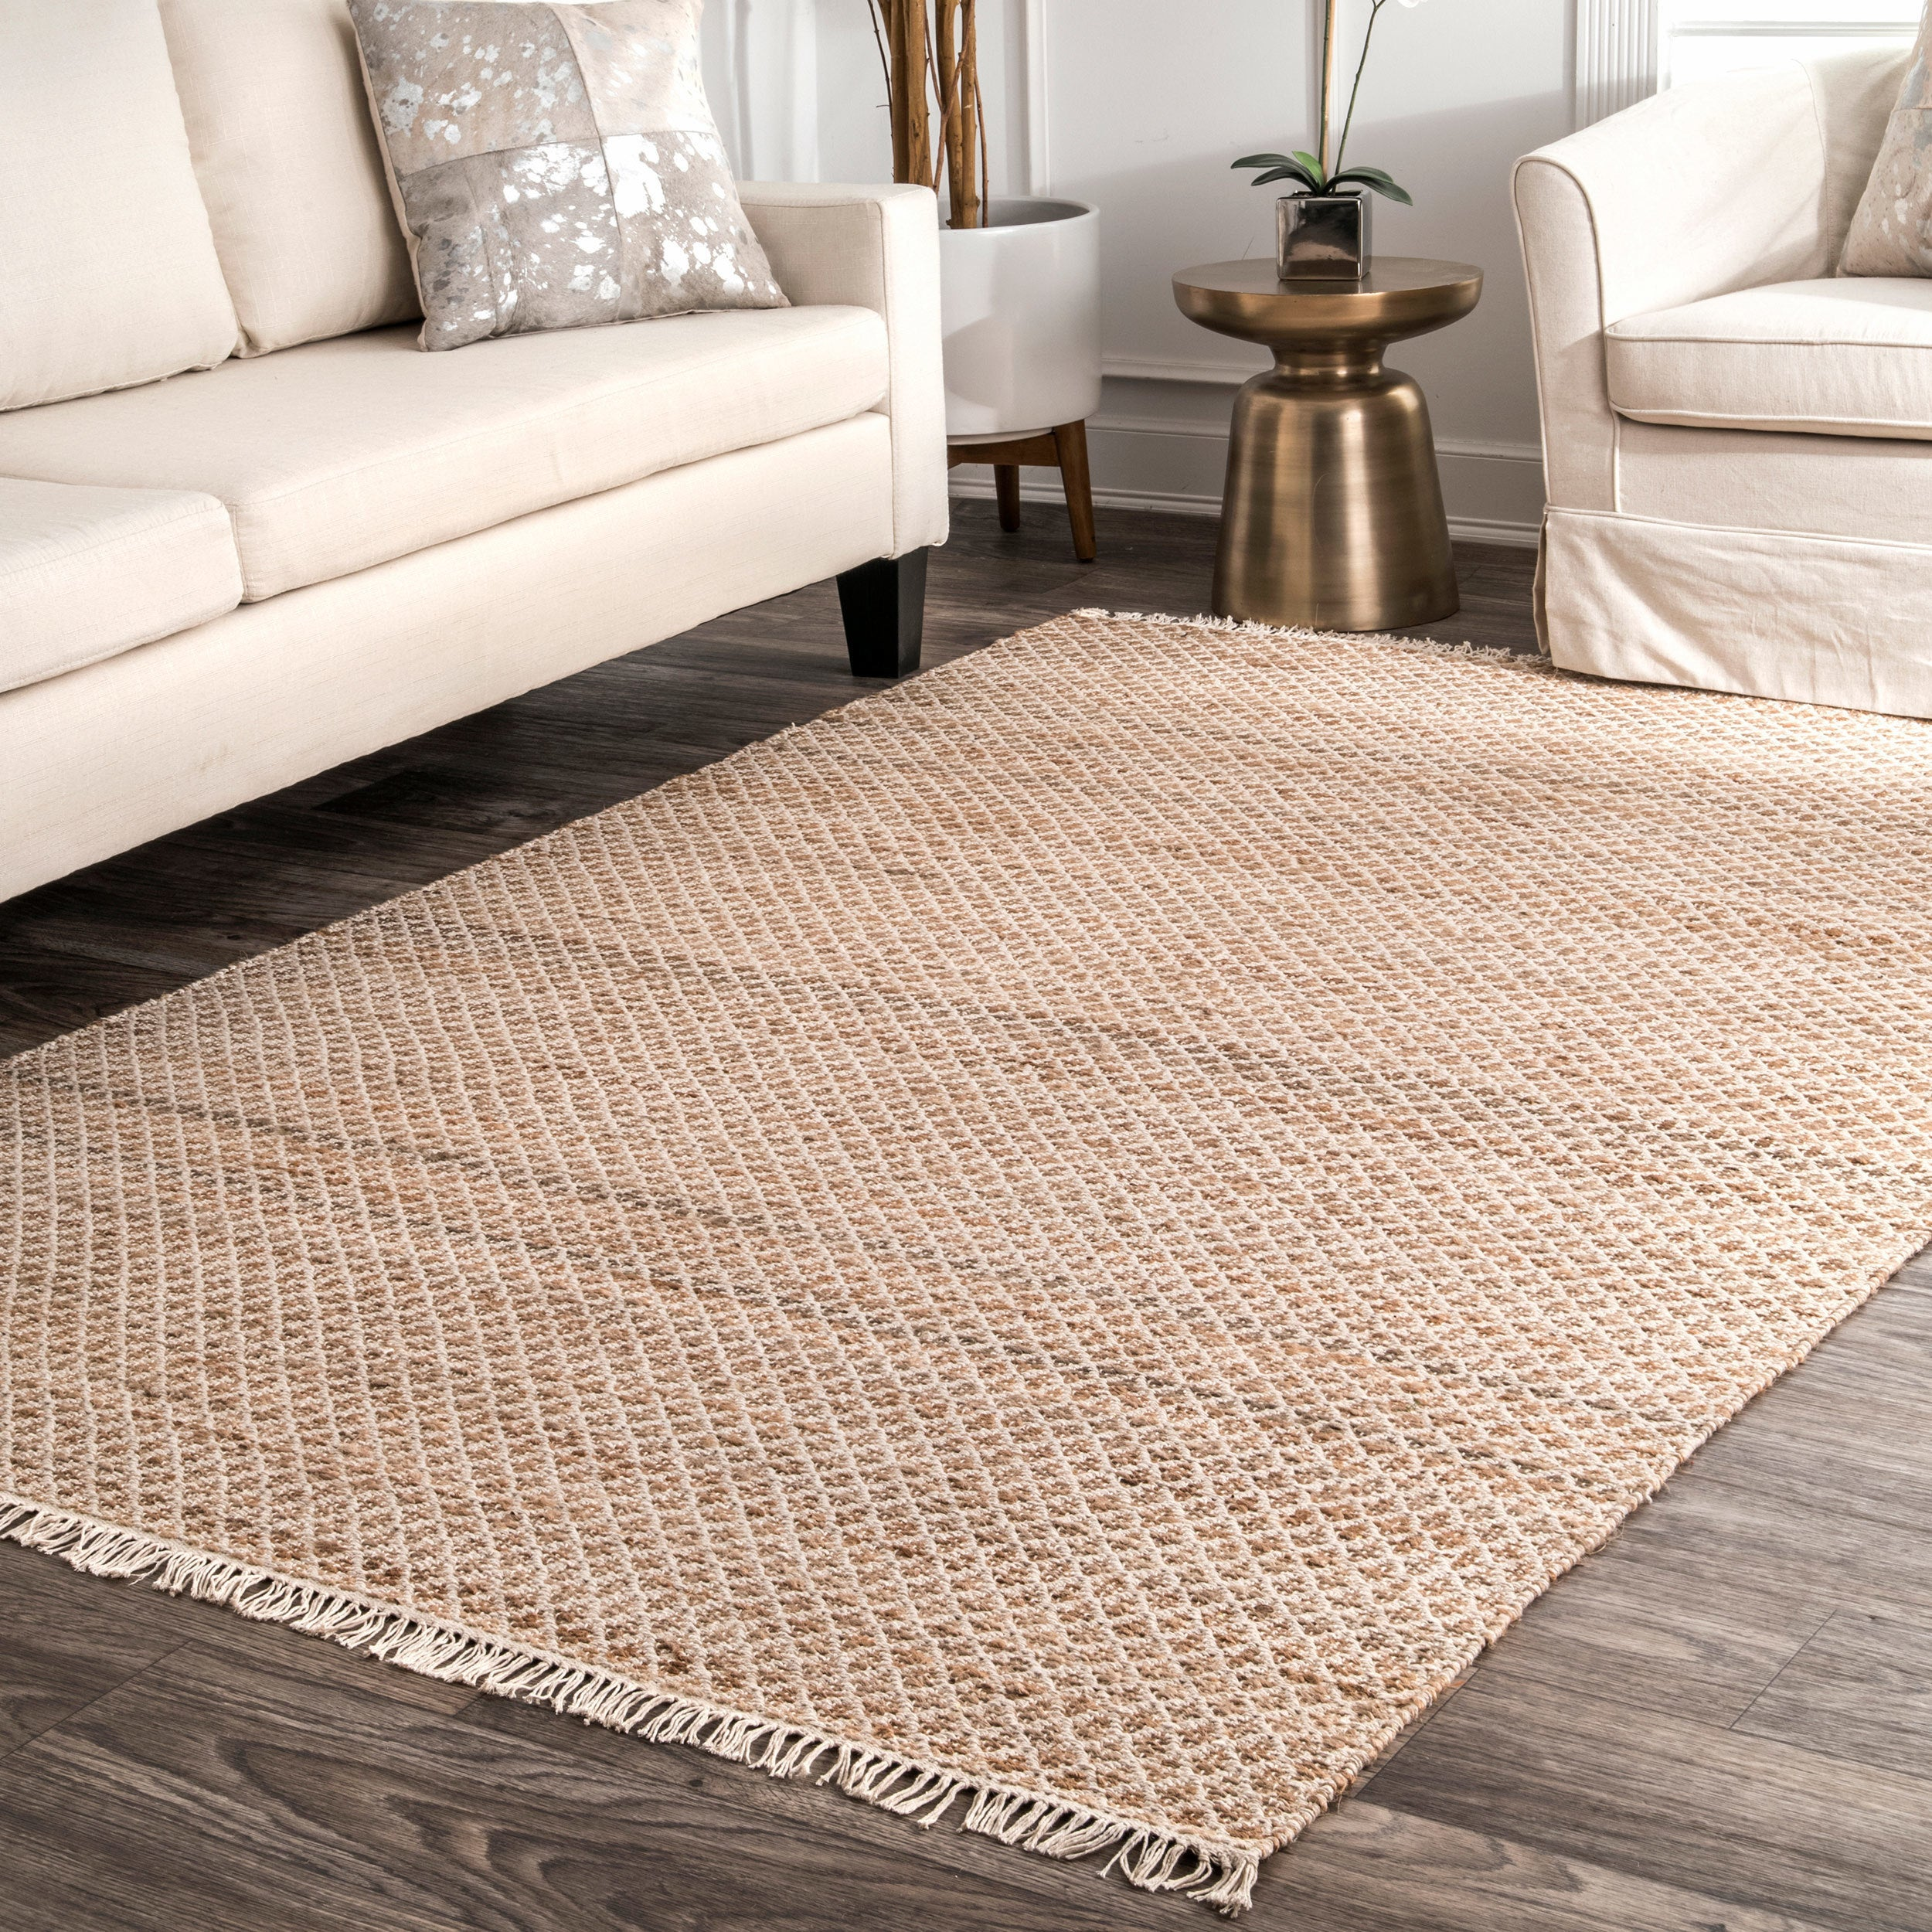 Nuloom Natural Jute Cotton Casual